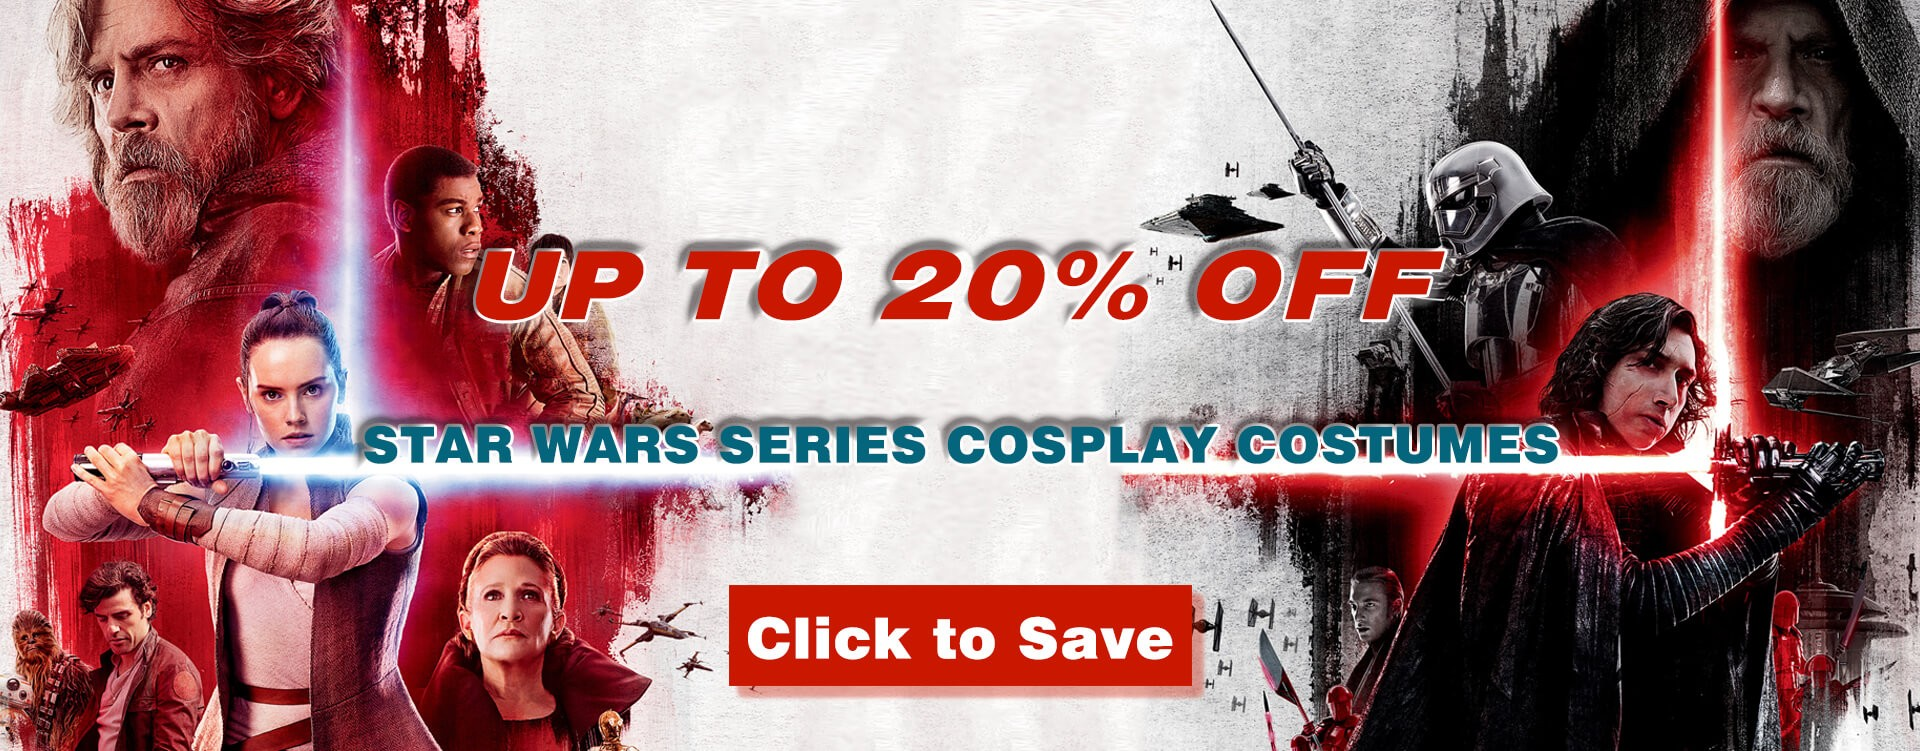 Select Star Wars Cosplay Costumes for for men and women with up to 20% off